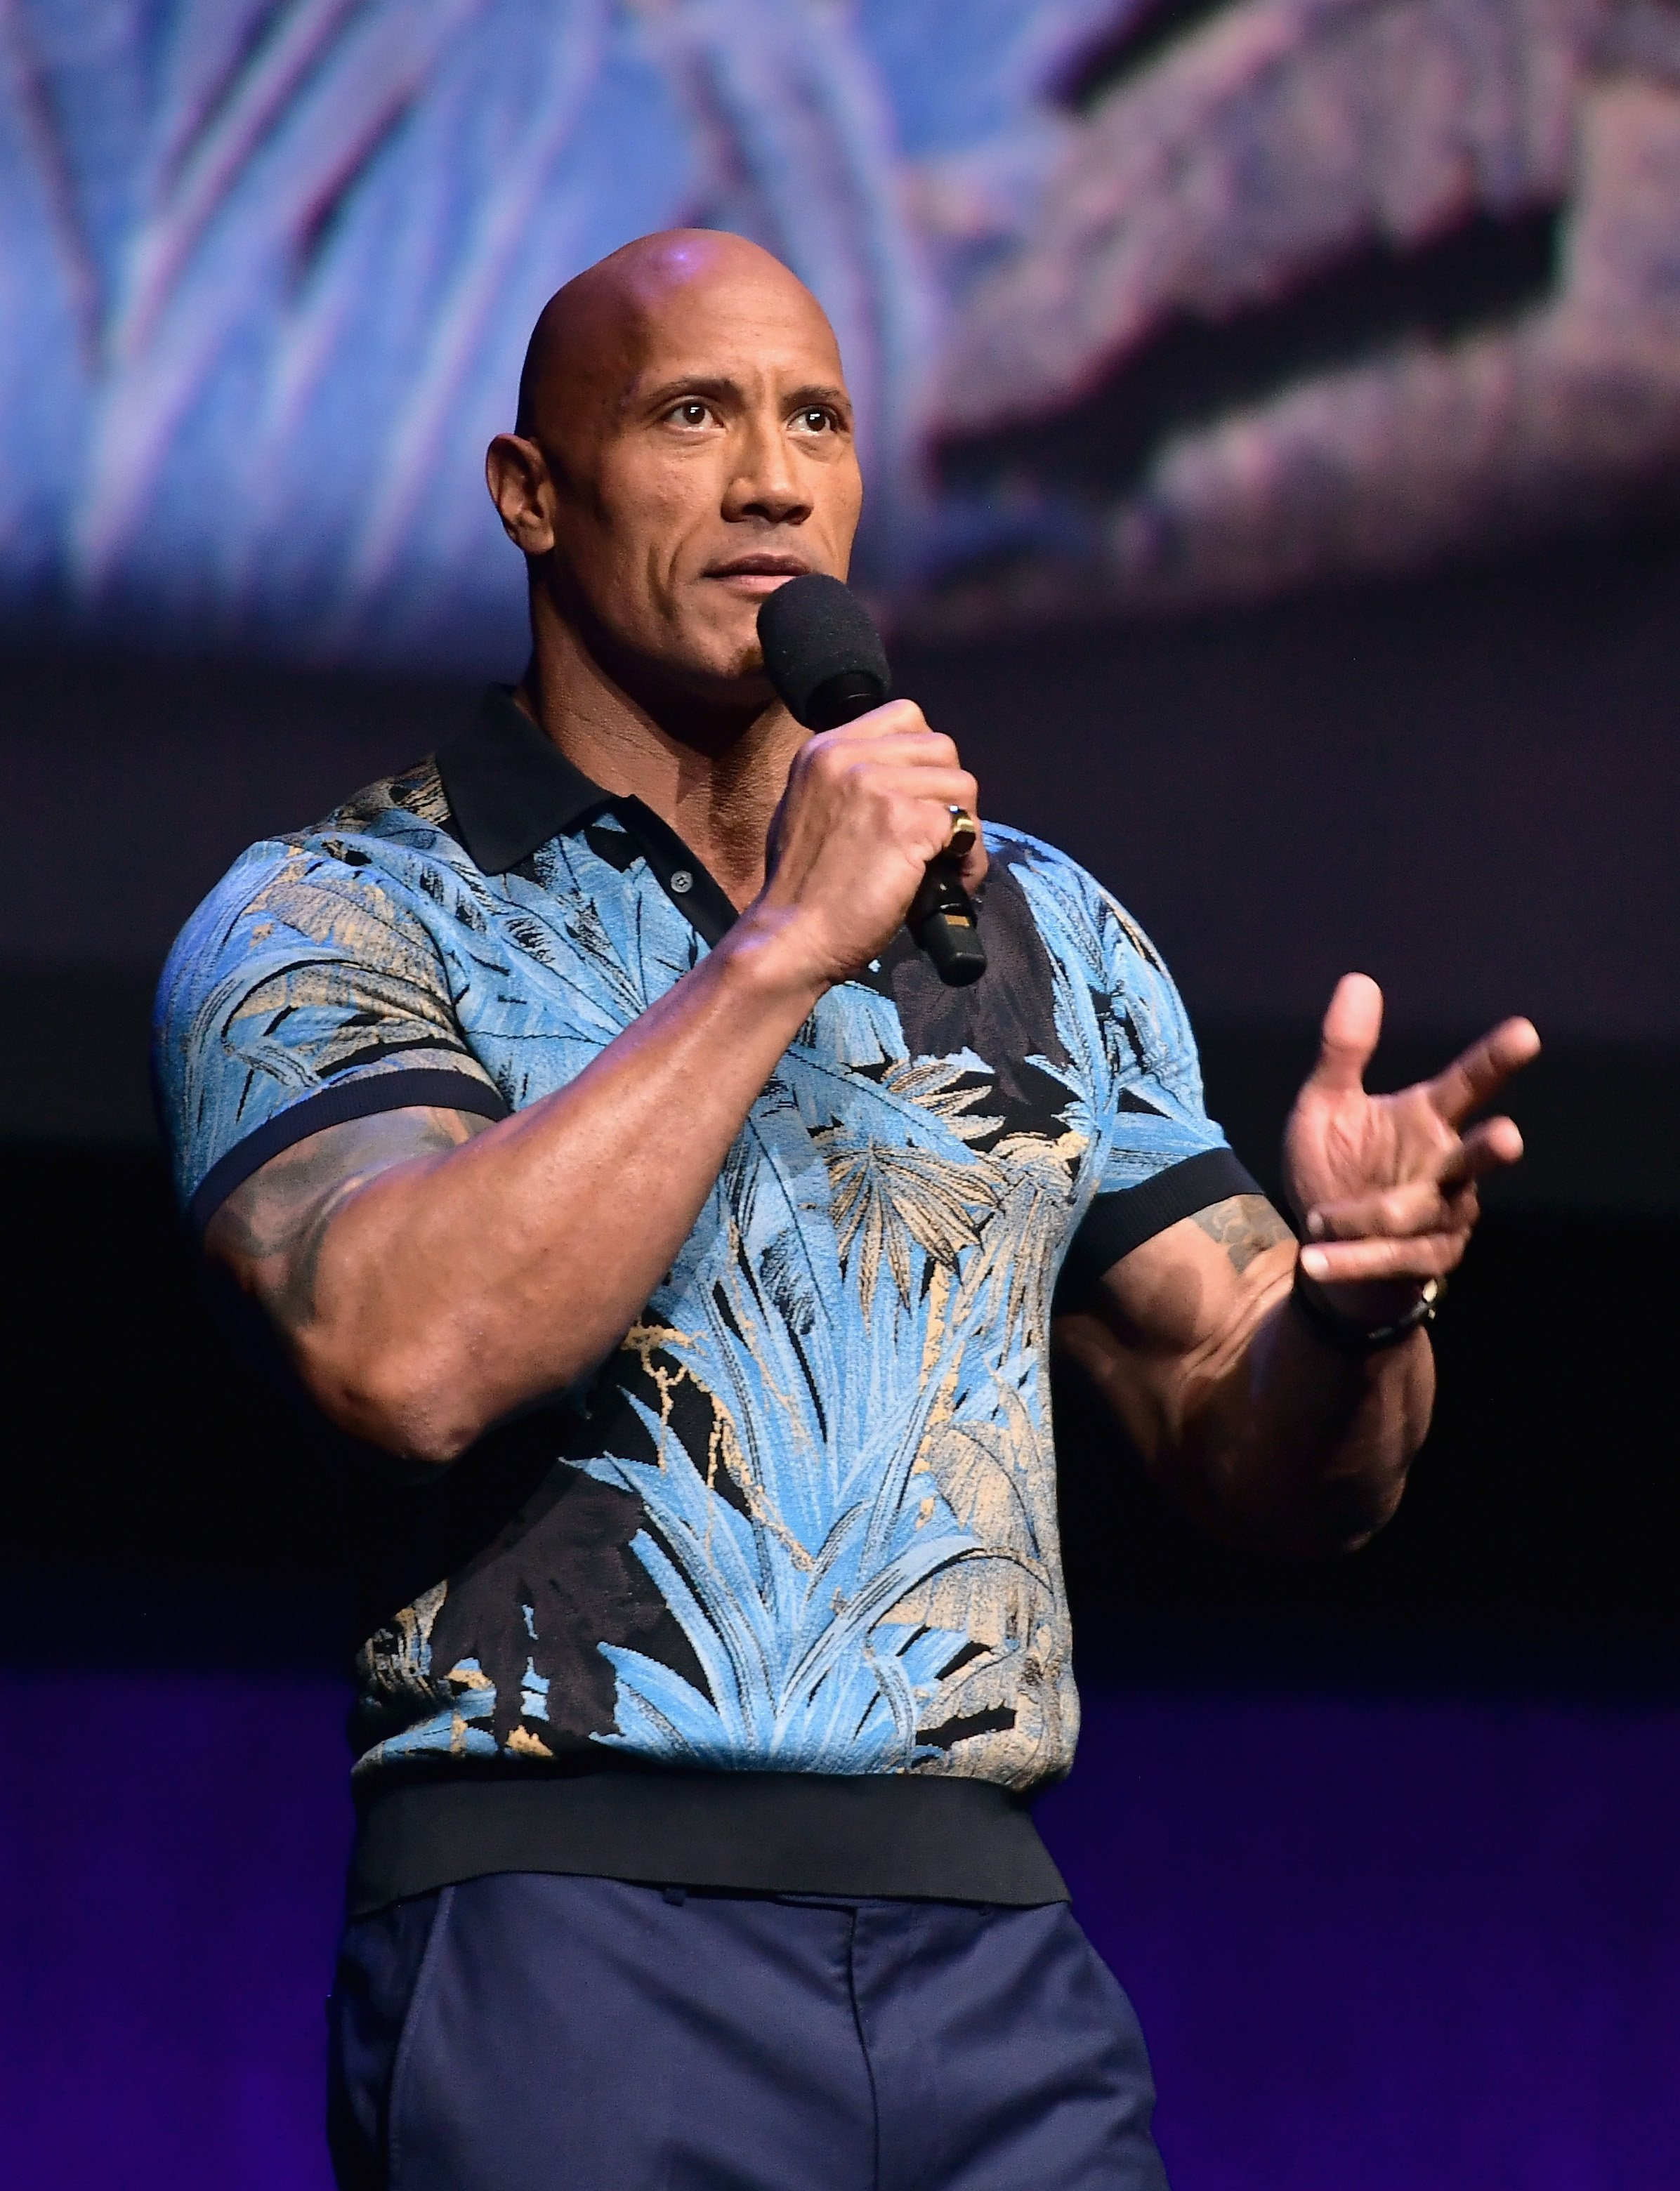 Dwayne Johnson speaks onstage at CinemaCon 2019 at The Colosseum at Caesars Palace, on April 3, 2019 in Las Vegas, Nevada. | Source: Getty Images.